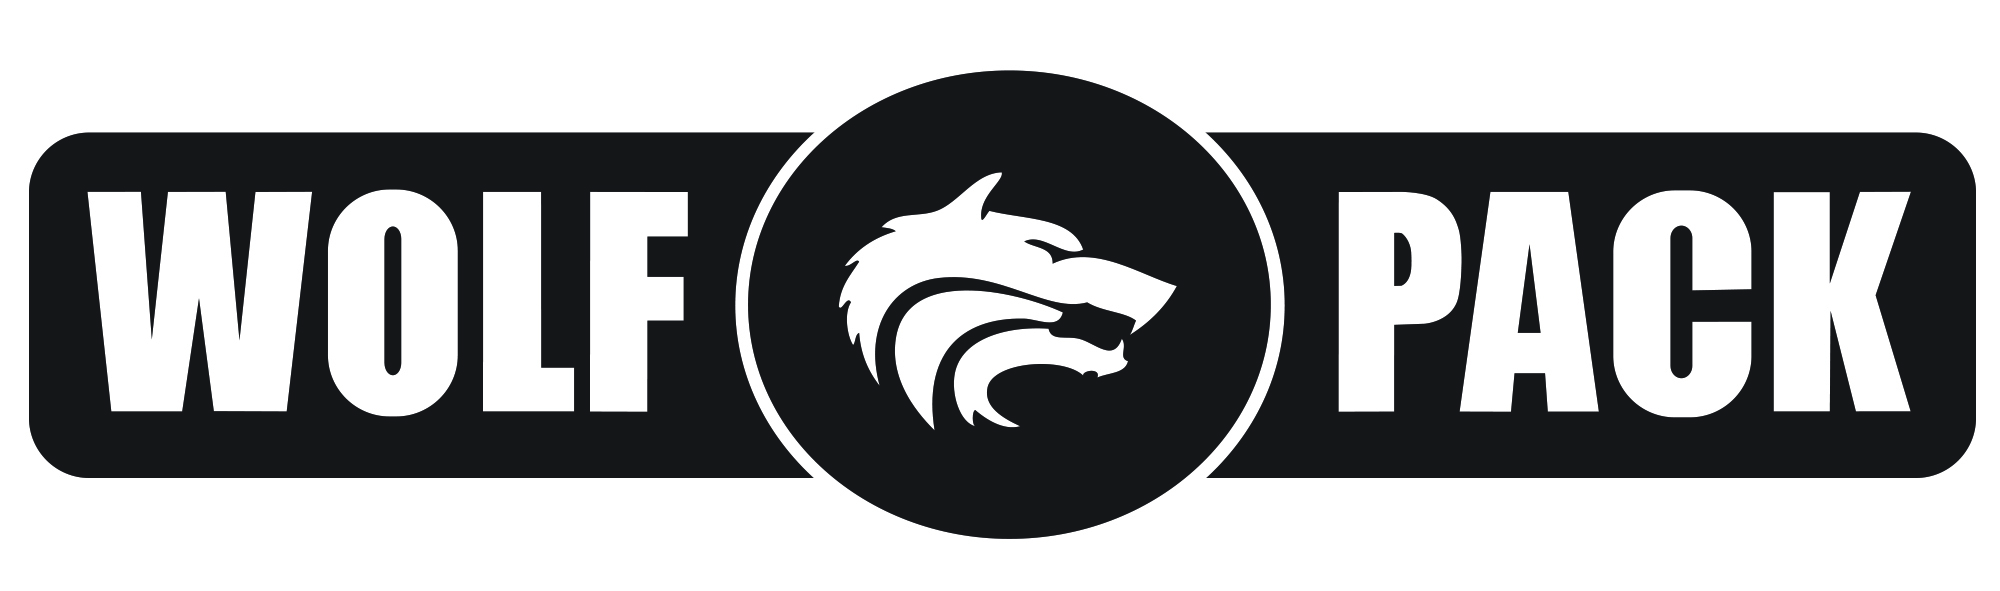 Wolpack_Logo_High_Res2017